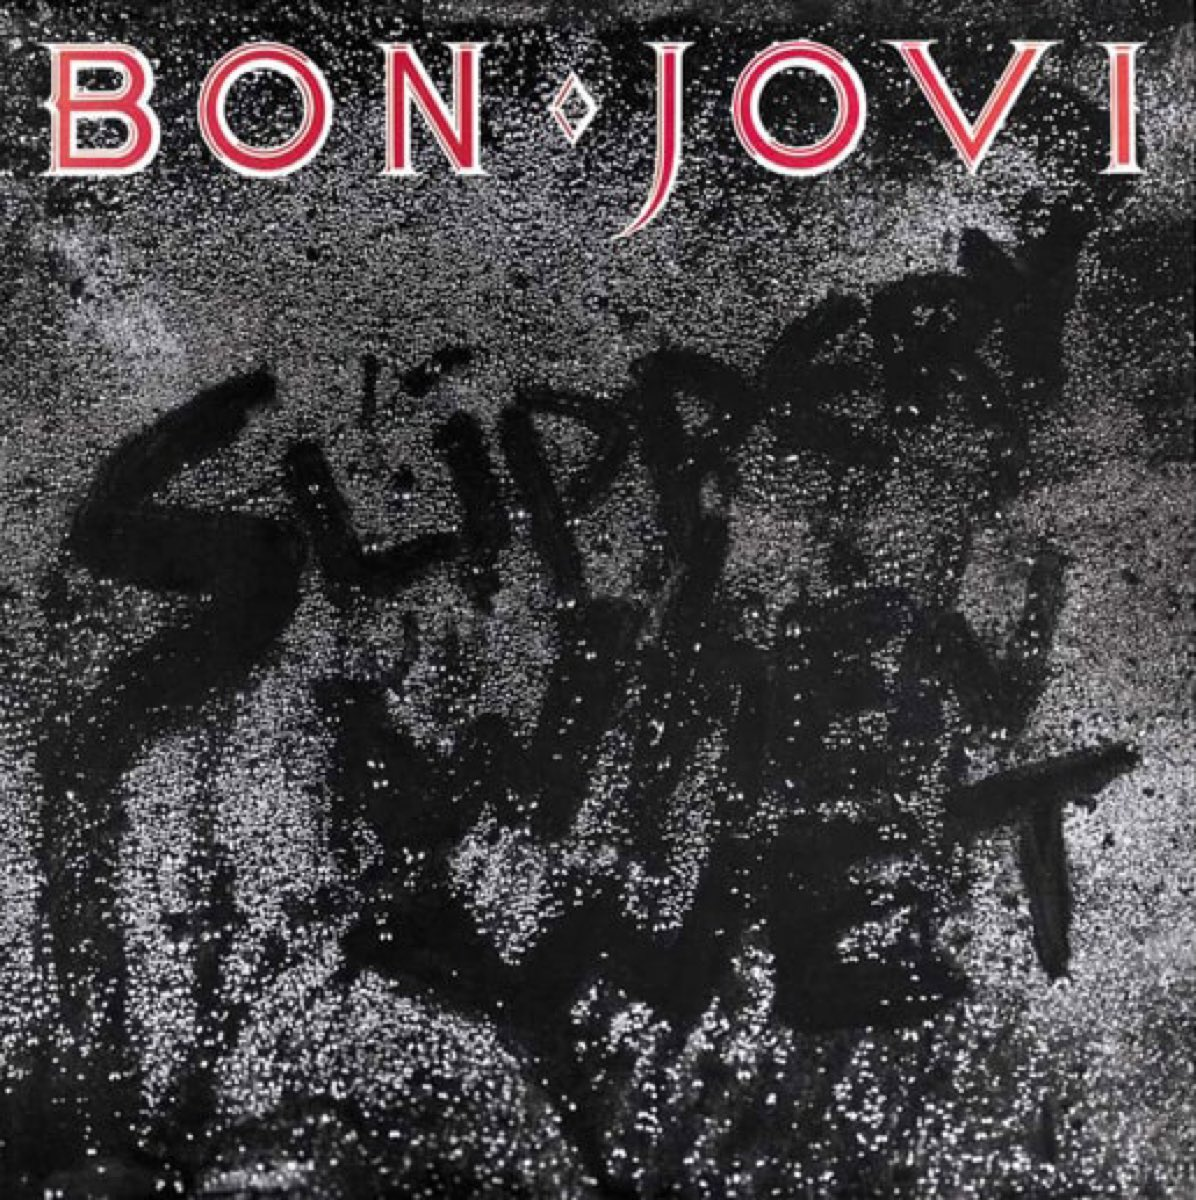 Bon Jovi Slippery When Wet album cover, 1986